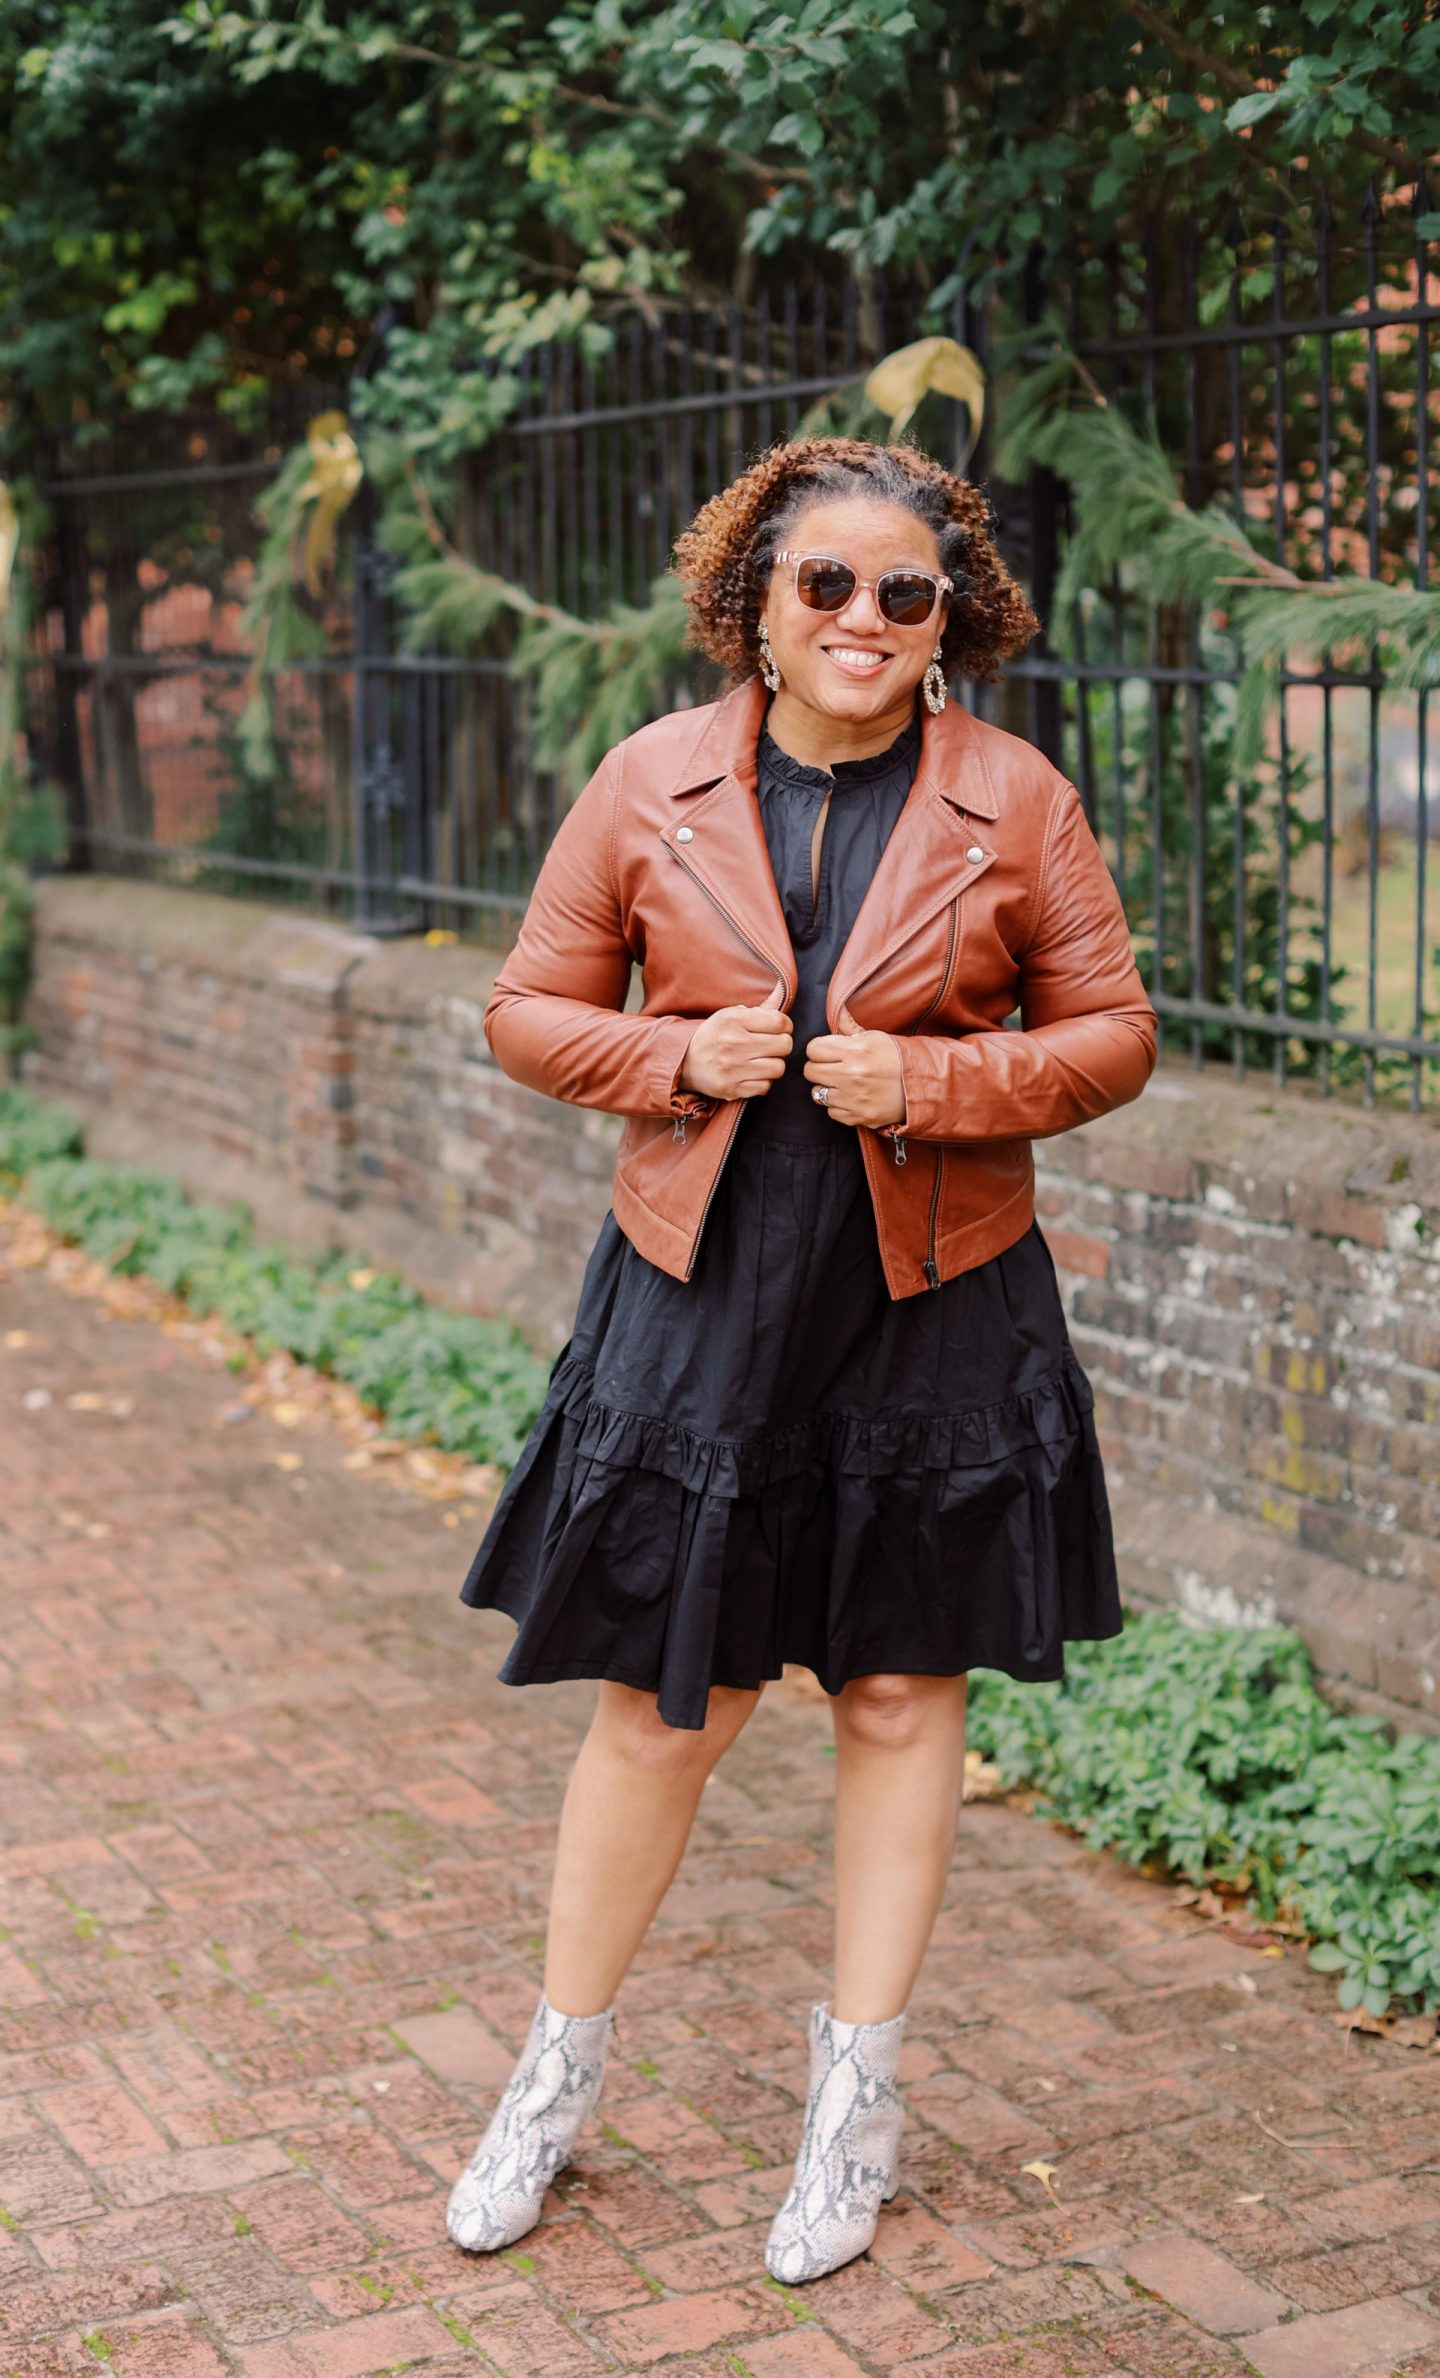 Leather Jackets by popular Kentucky fashion blog, Really Rynetta: image of a woman wearing a brown leather jacket with a black midi dress and snake skin ankle boots.